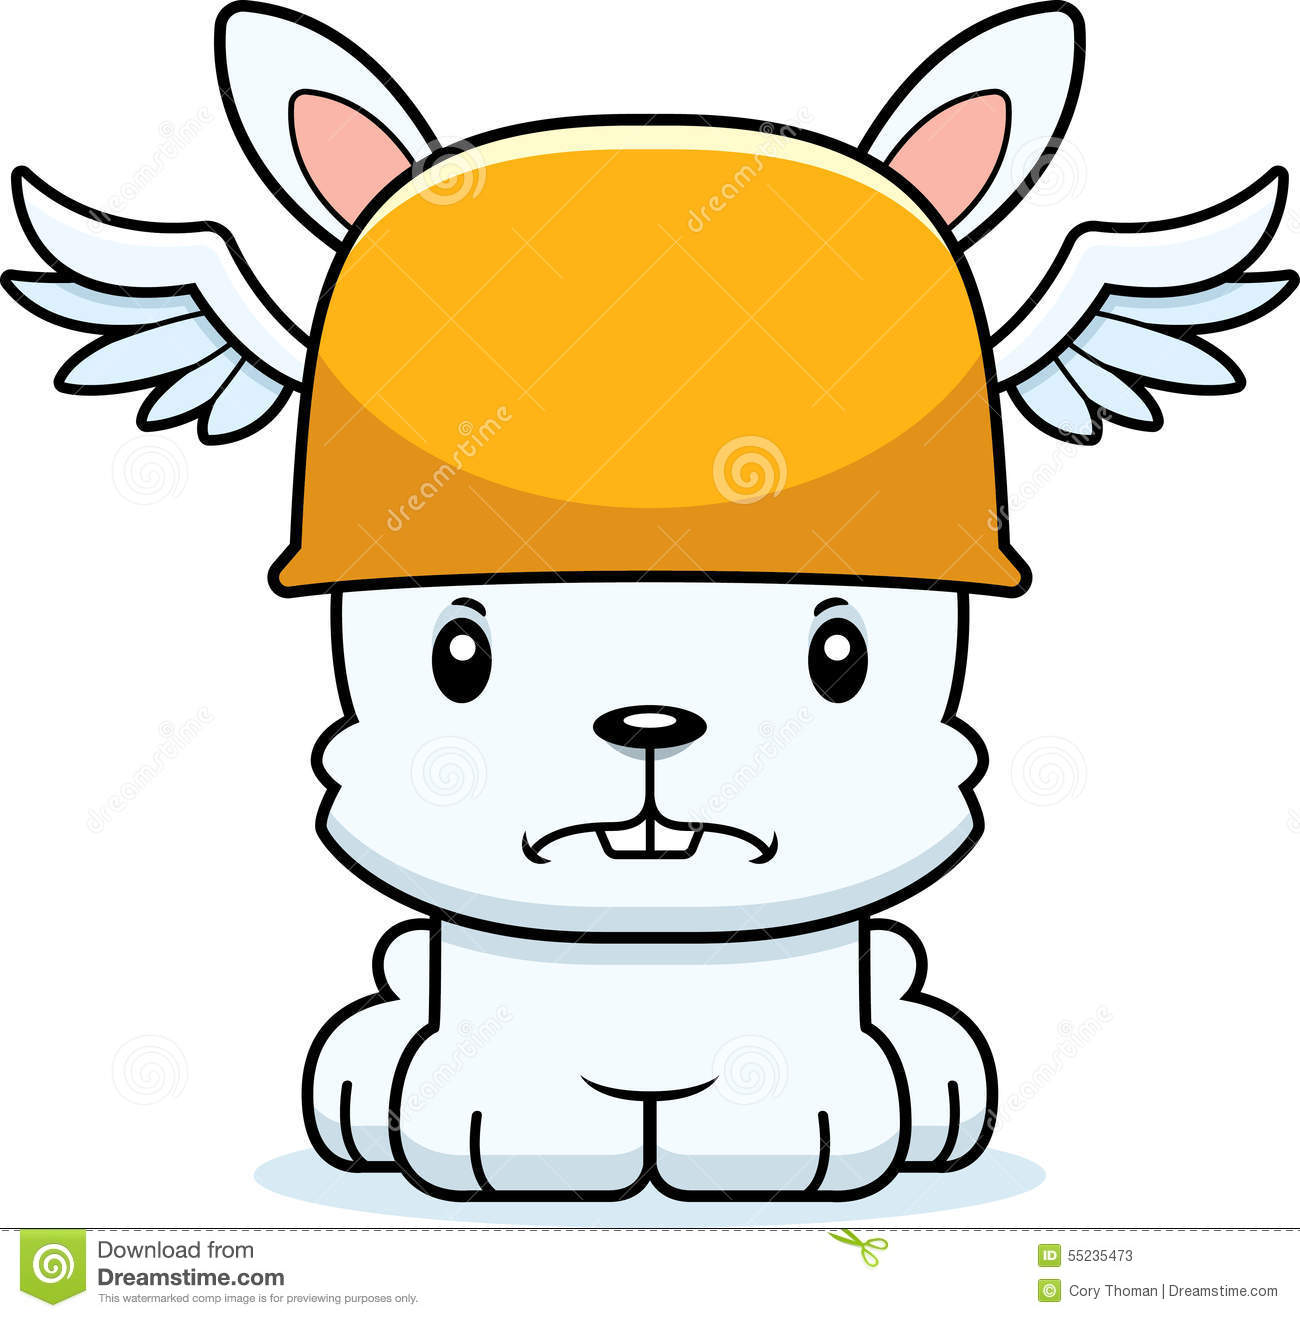 Cartoon Angry Hermes Bunny stock vector. Illustration of ...